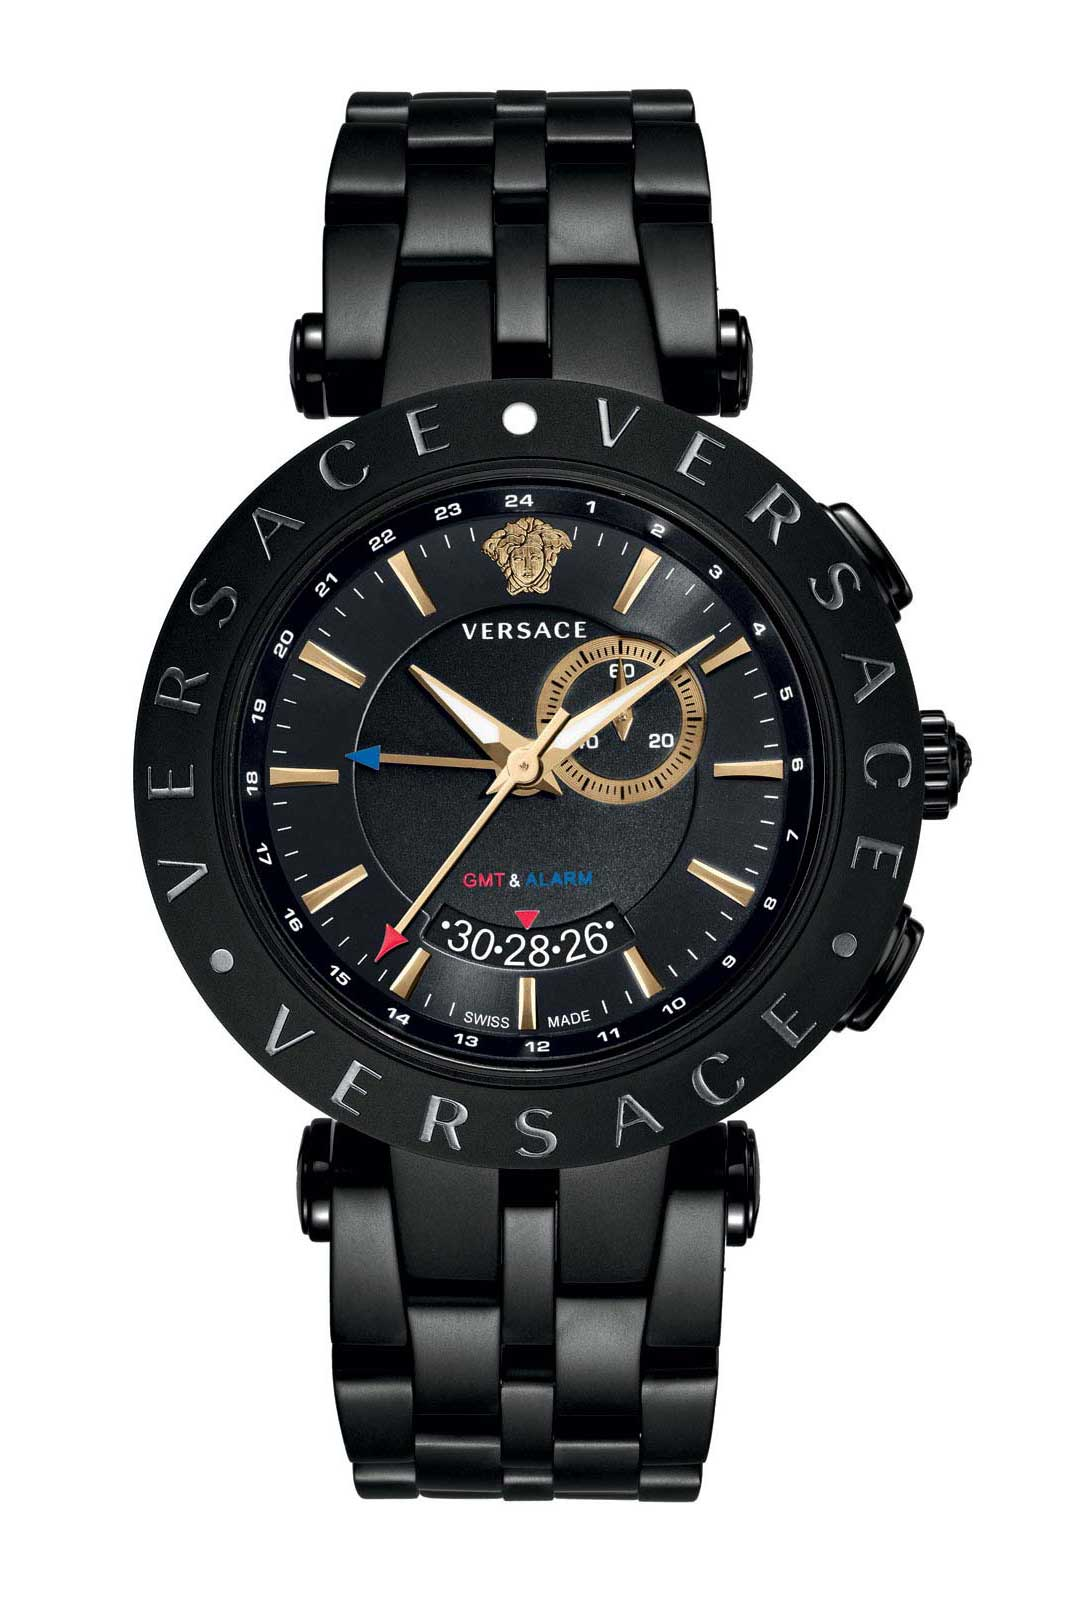 Versace watches pricelist 2016